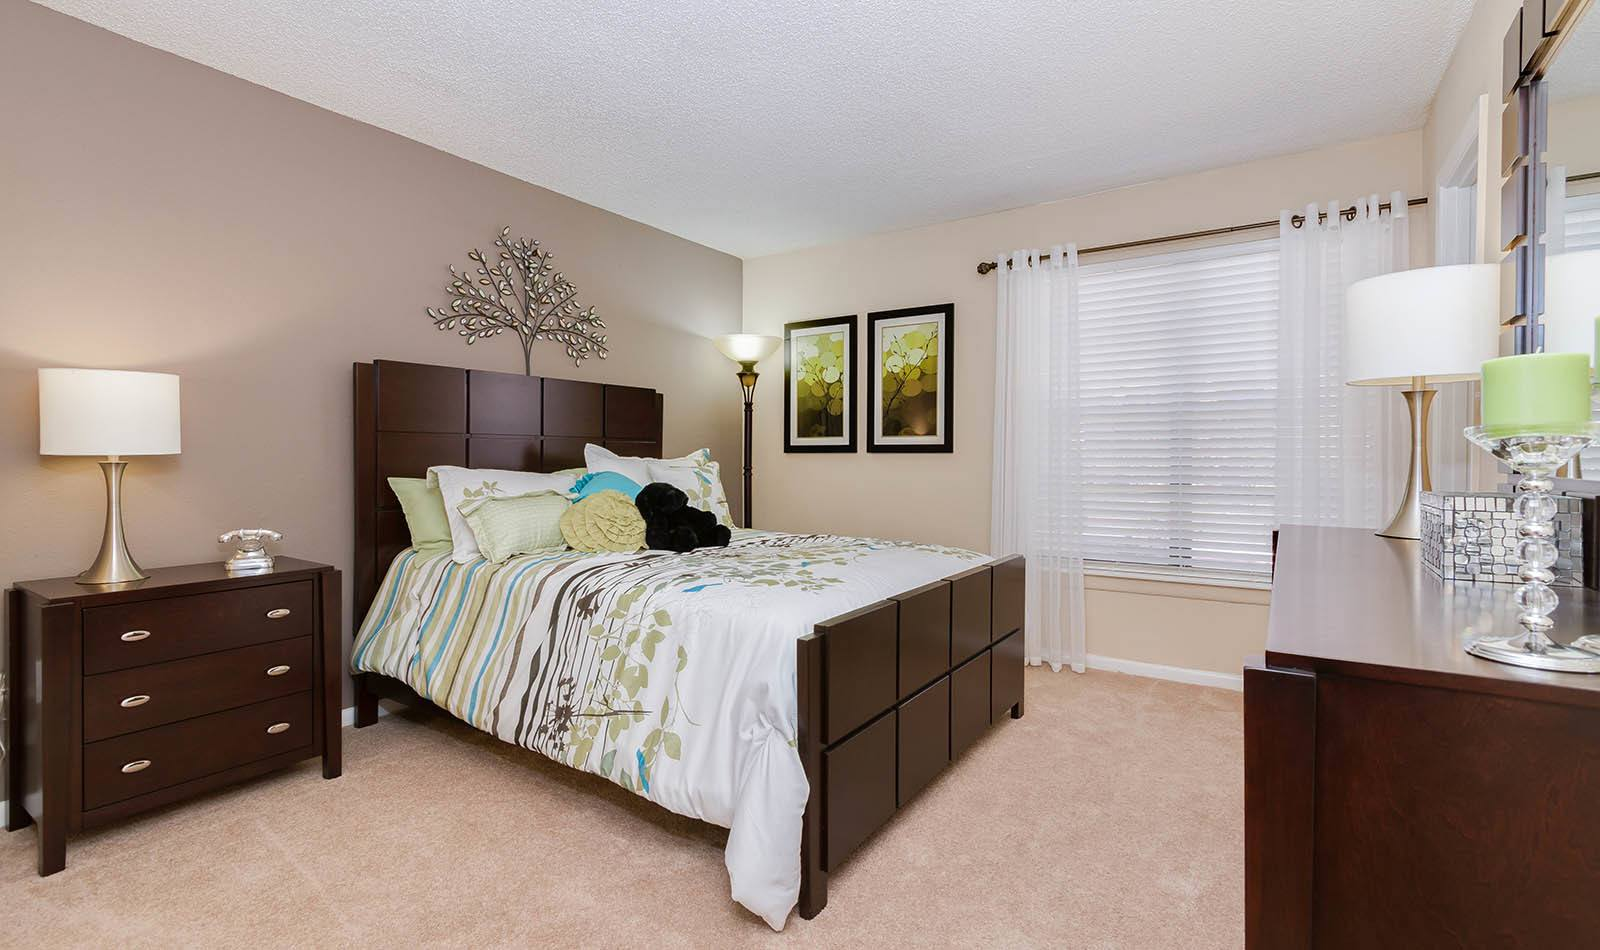 Bedroom at Waterstone at Carrollwood Apts in Tampa, FL